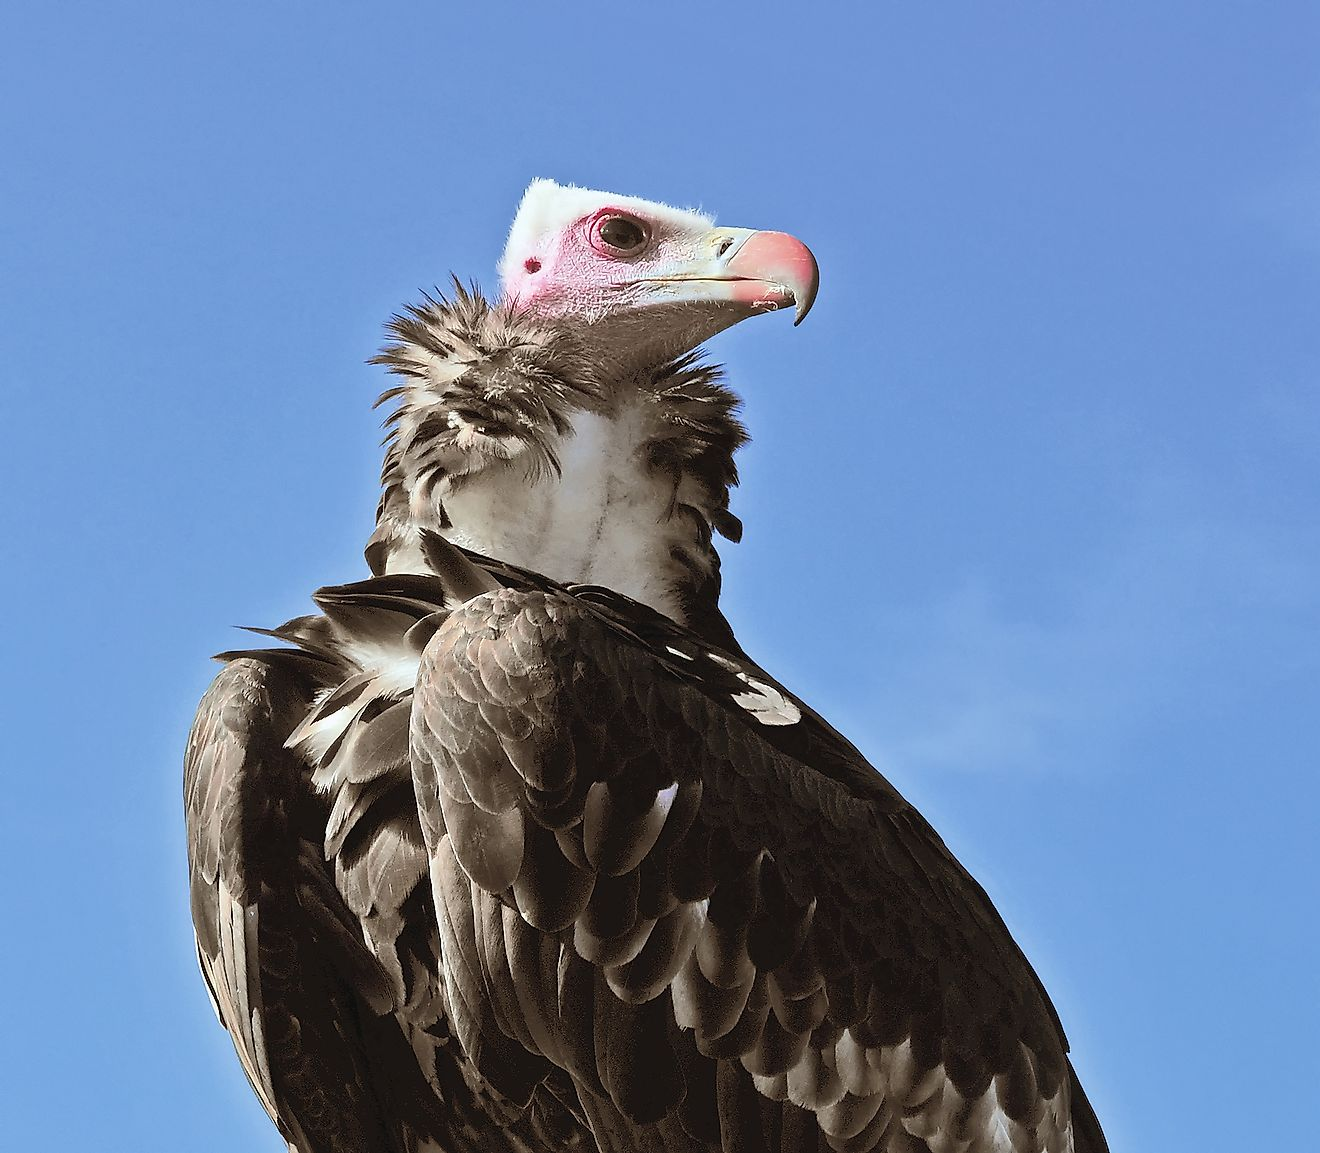 A White-Headed Vulture is a critically endangered species found in Africa.